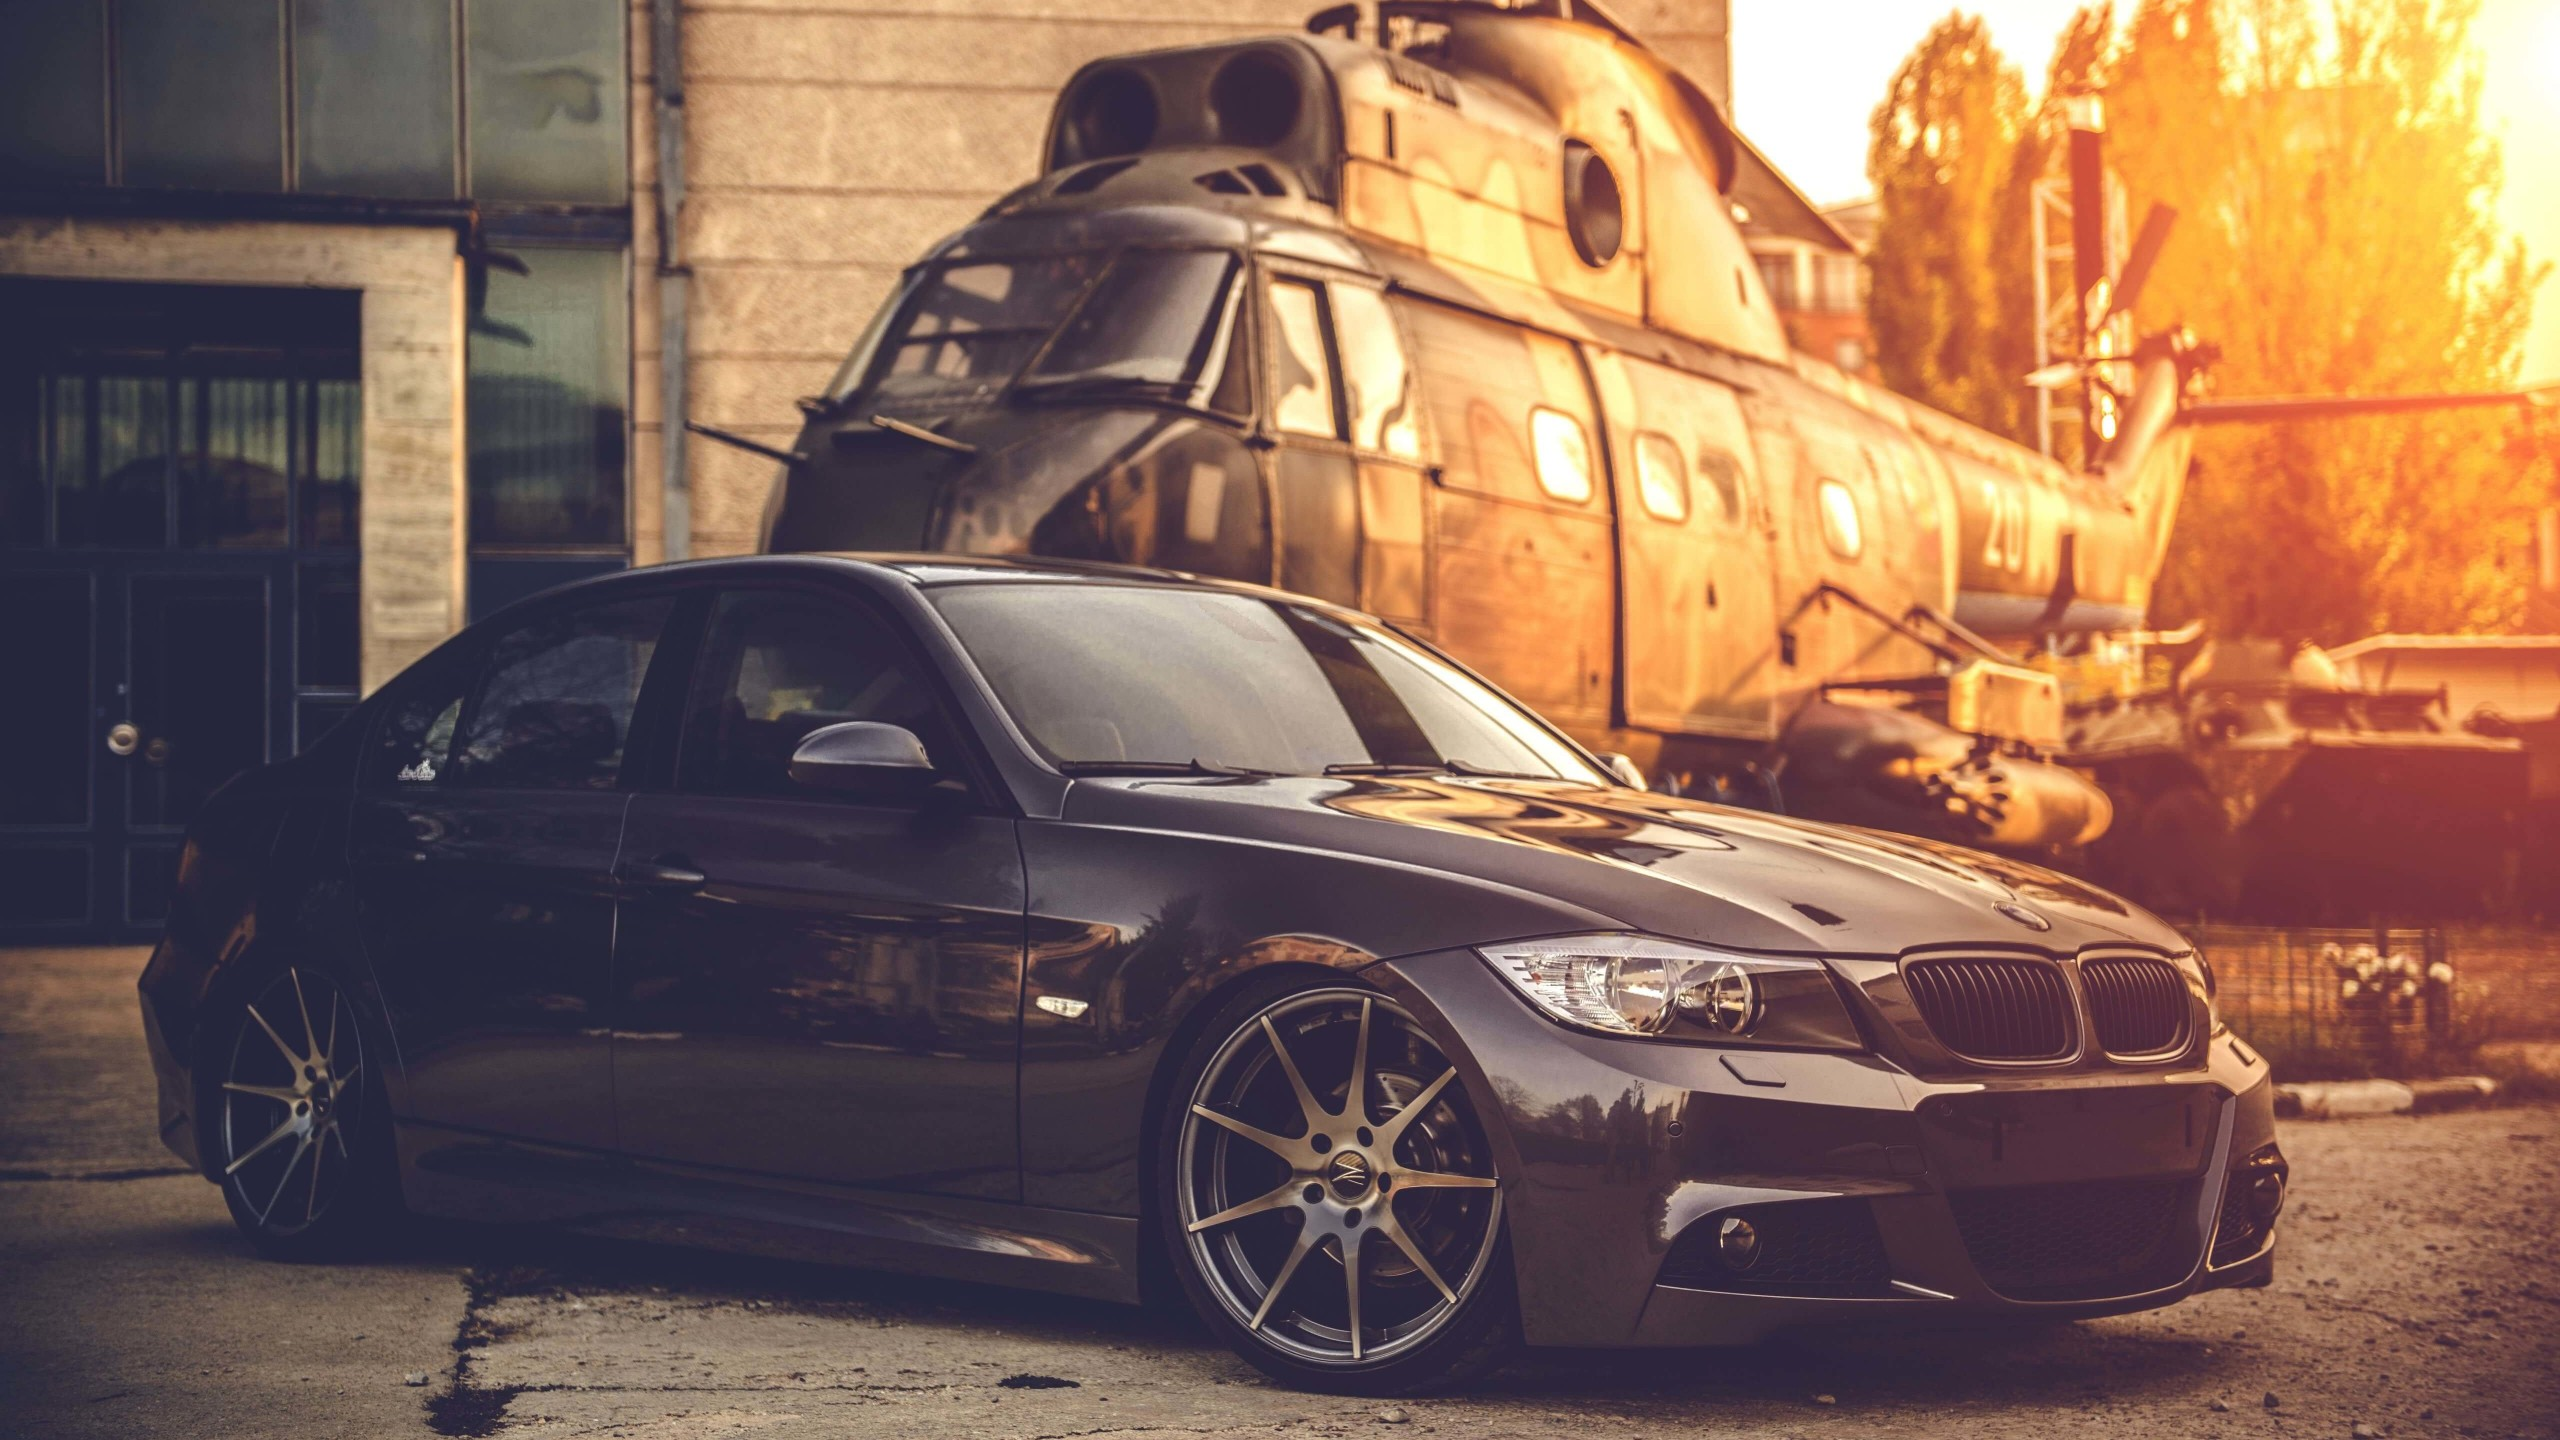 BMW E90 on Z-Performance Wheels Wallpaper for Social Media YouTube Channel Art